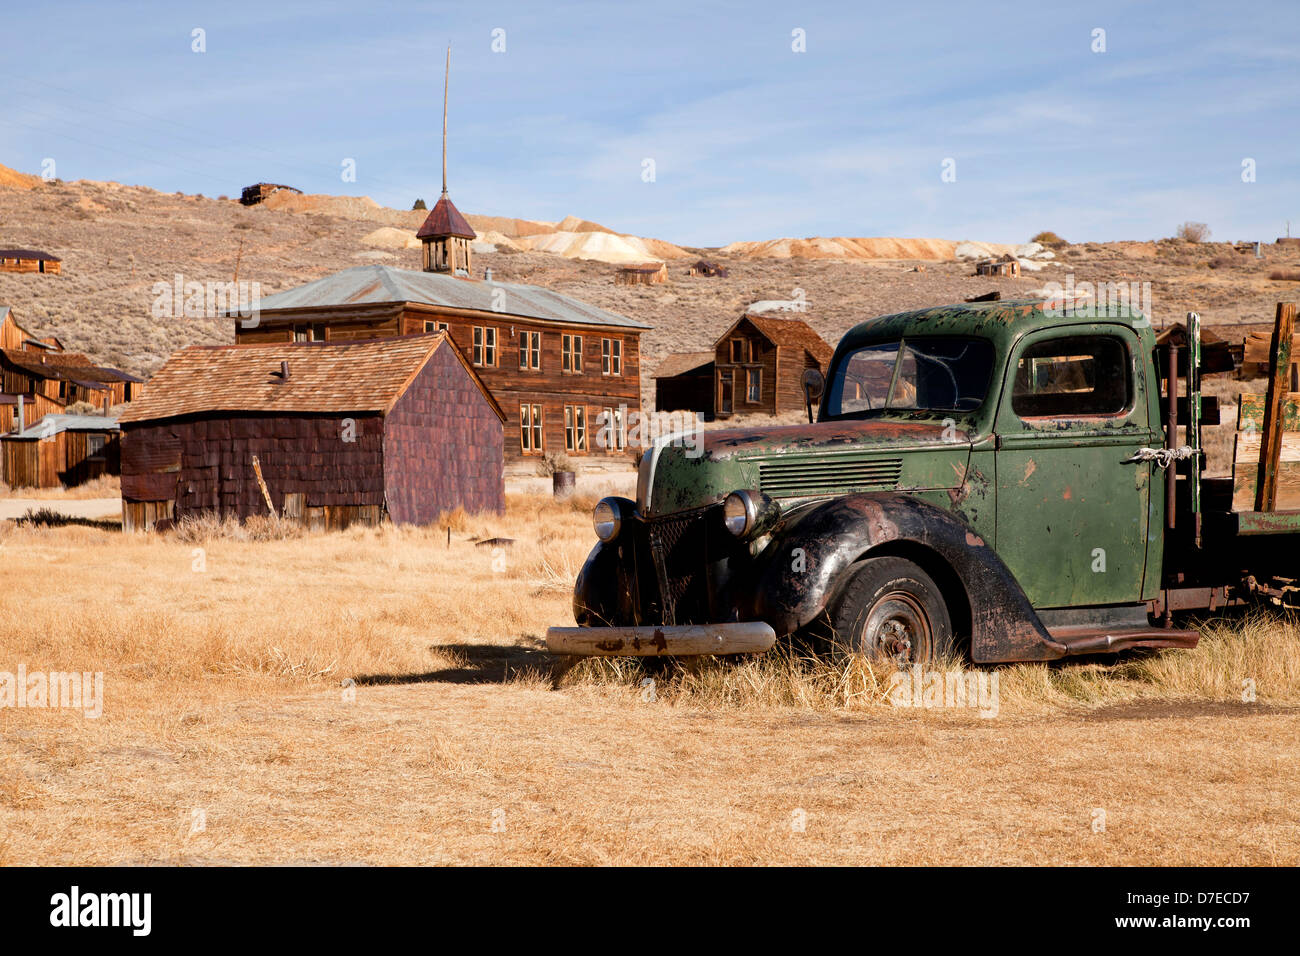 abandoned cars at the ghost town Bodie, California, United States of America, USA - Stock Image